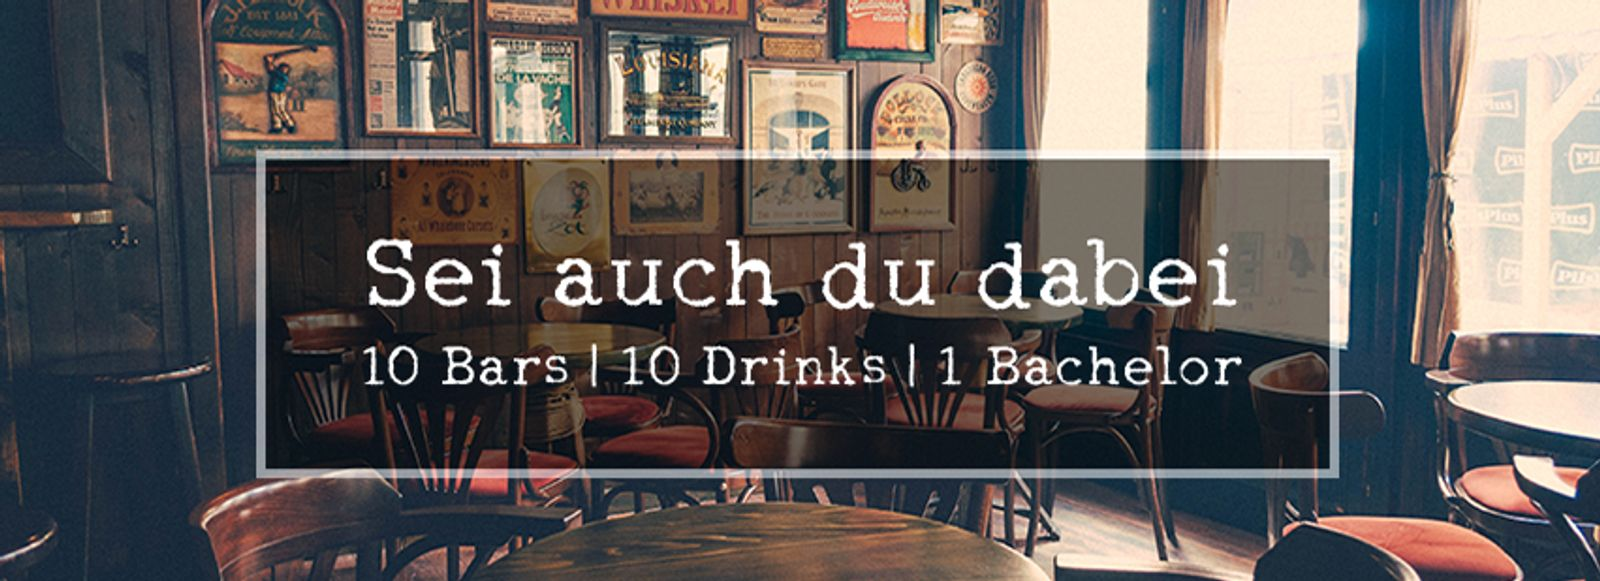 Bar Bachelor Bayreuth